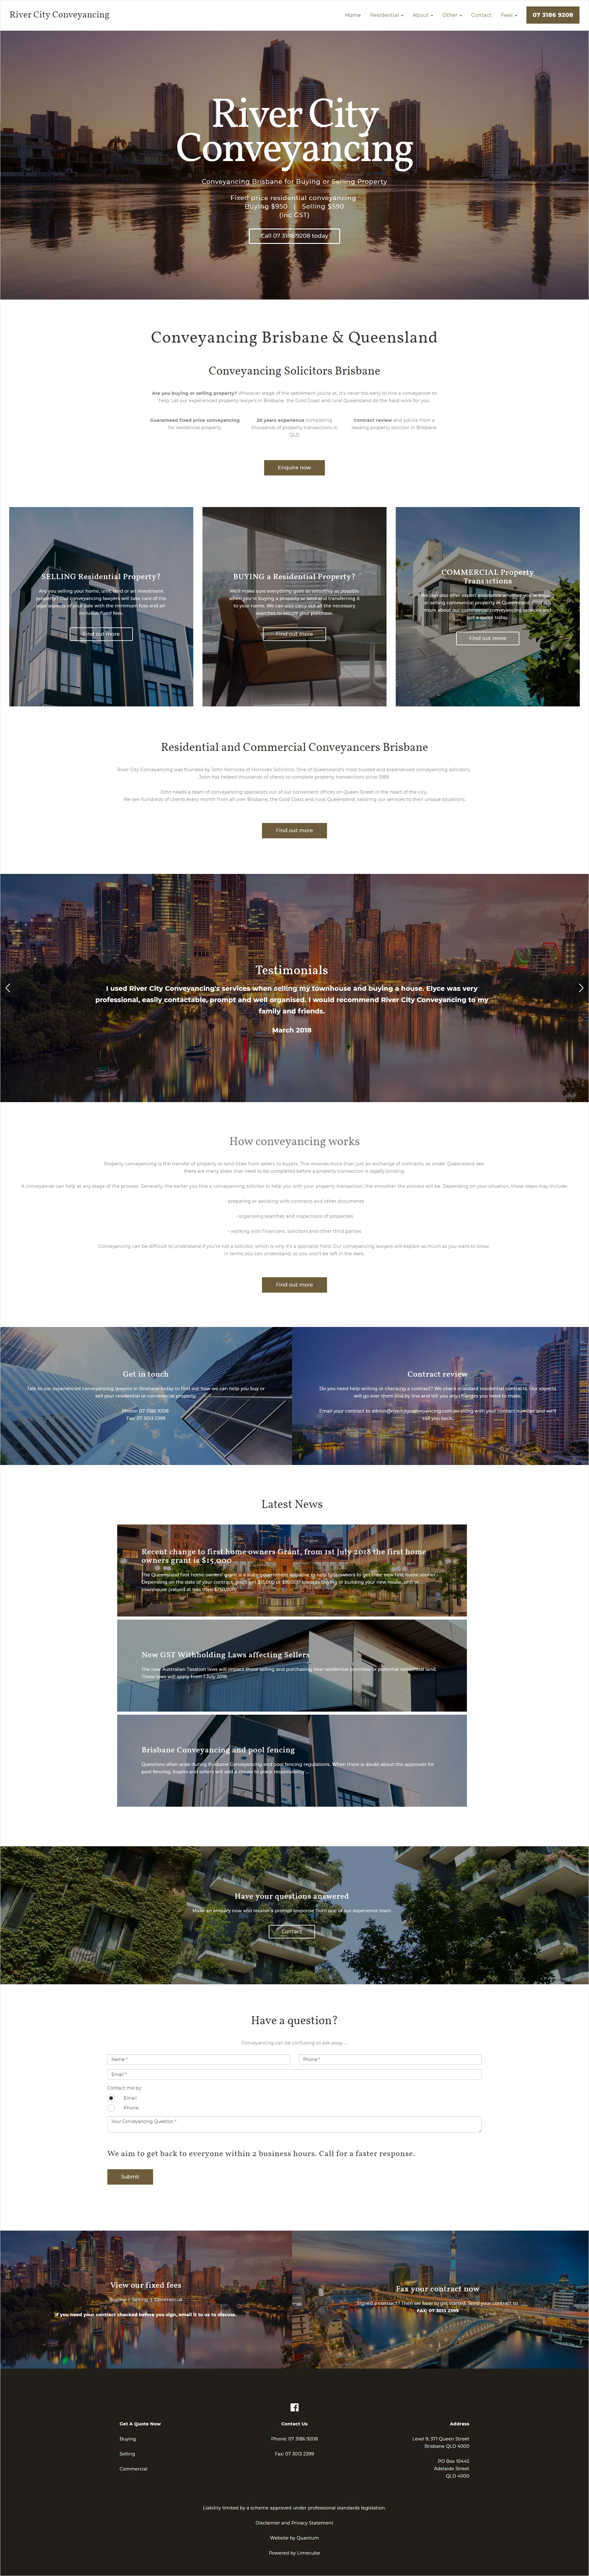 River City Conveyancing Home Page